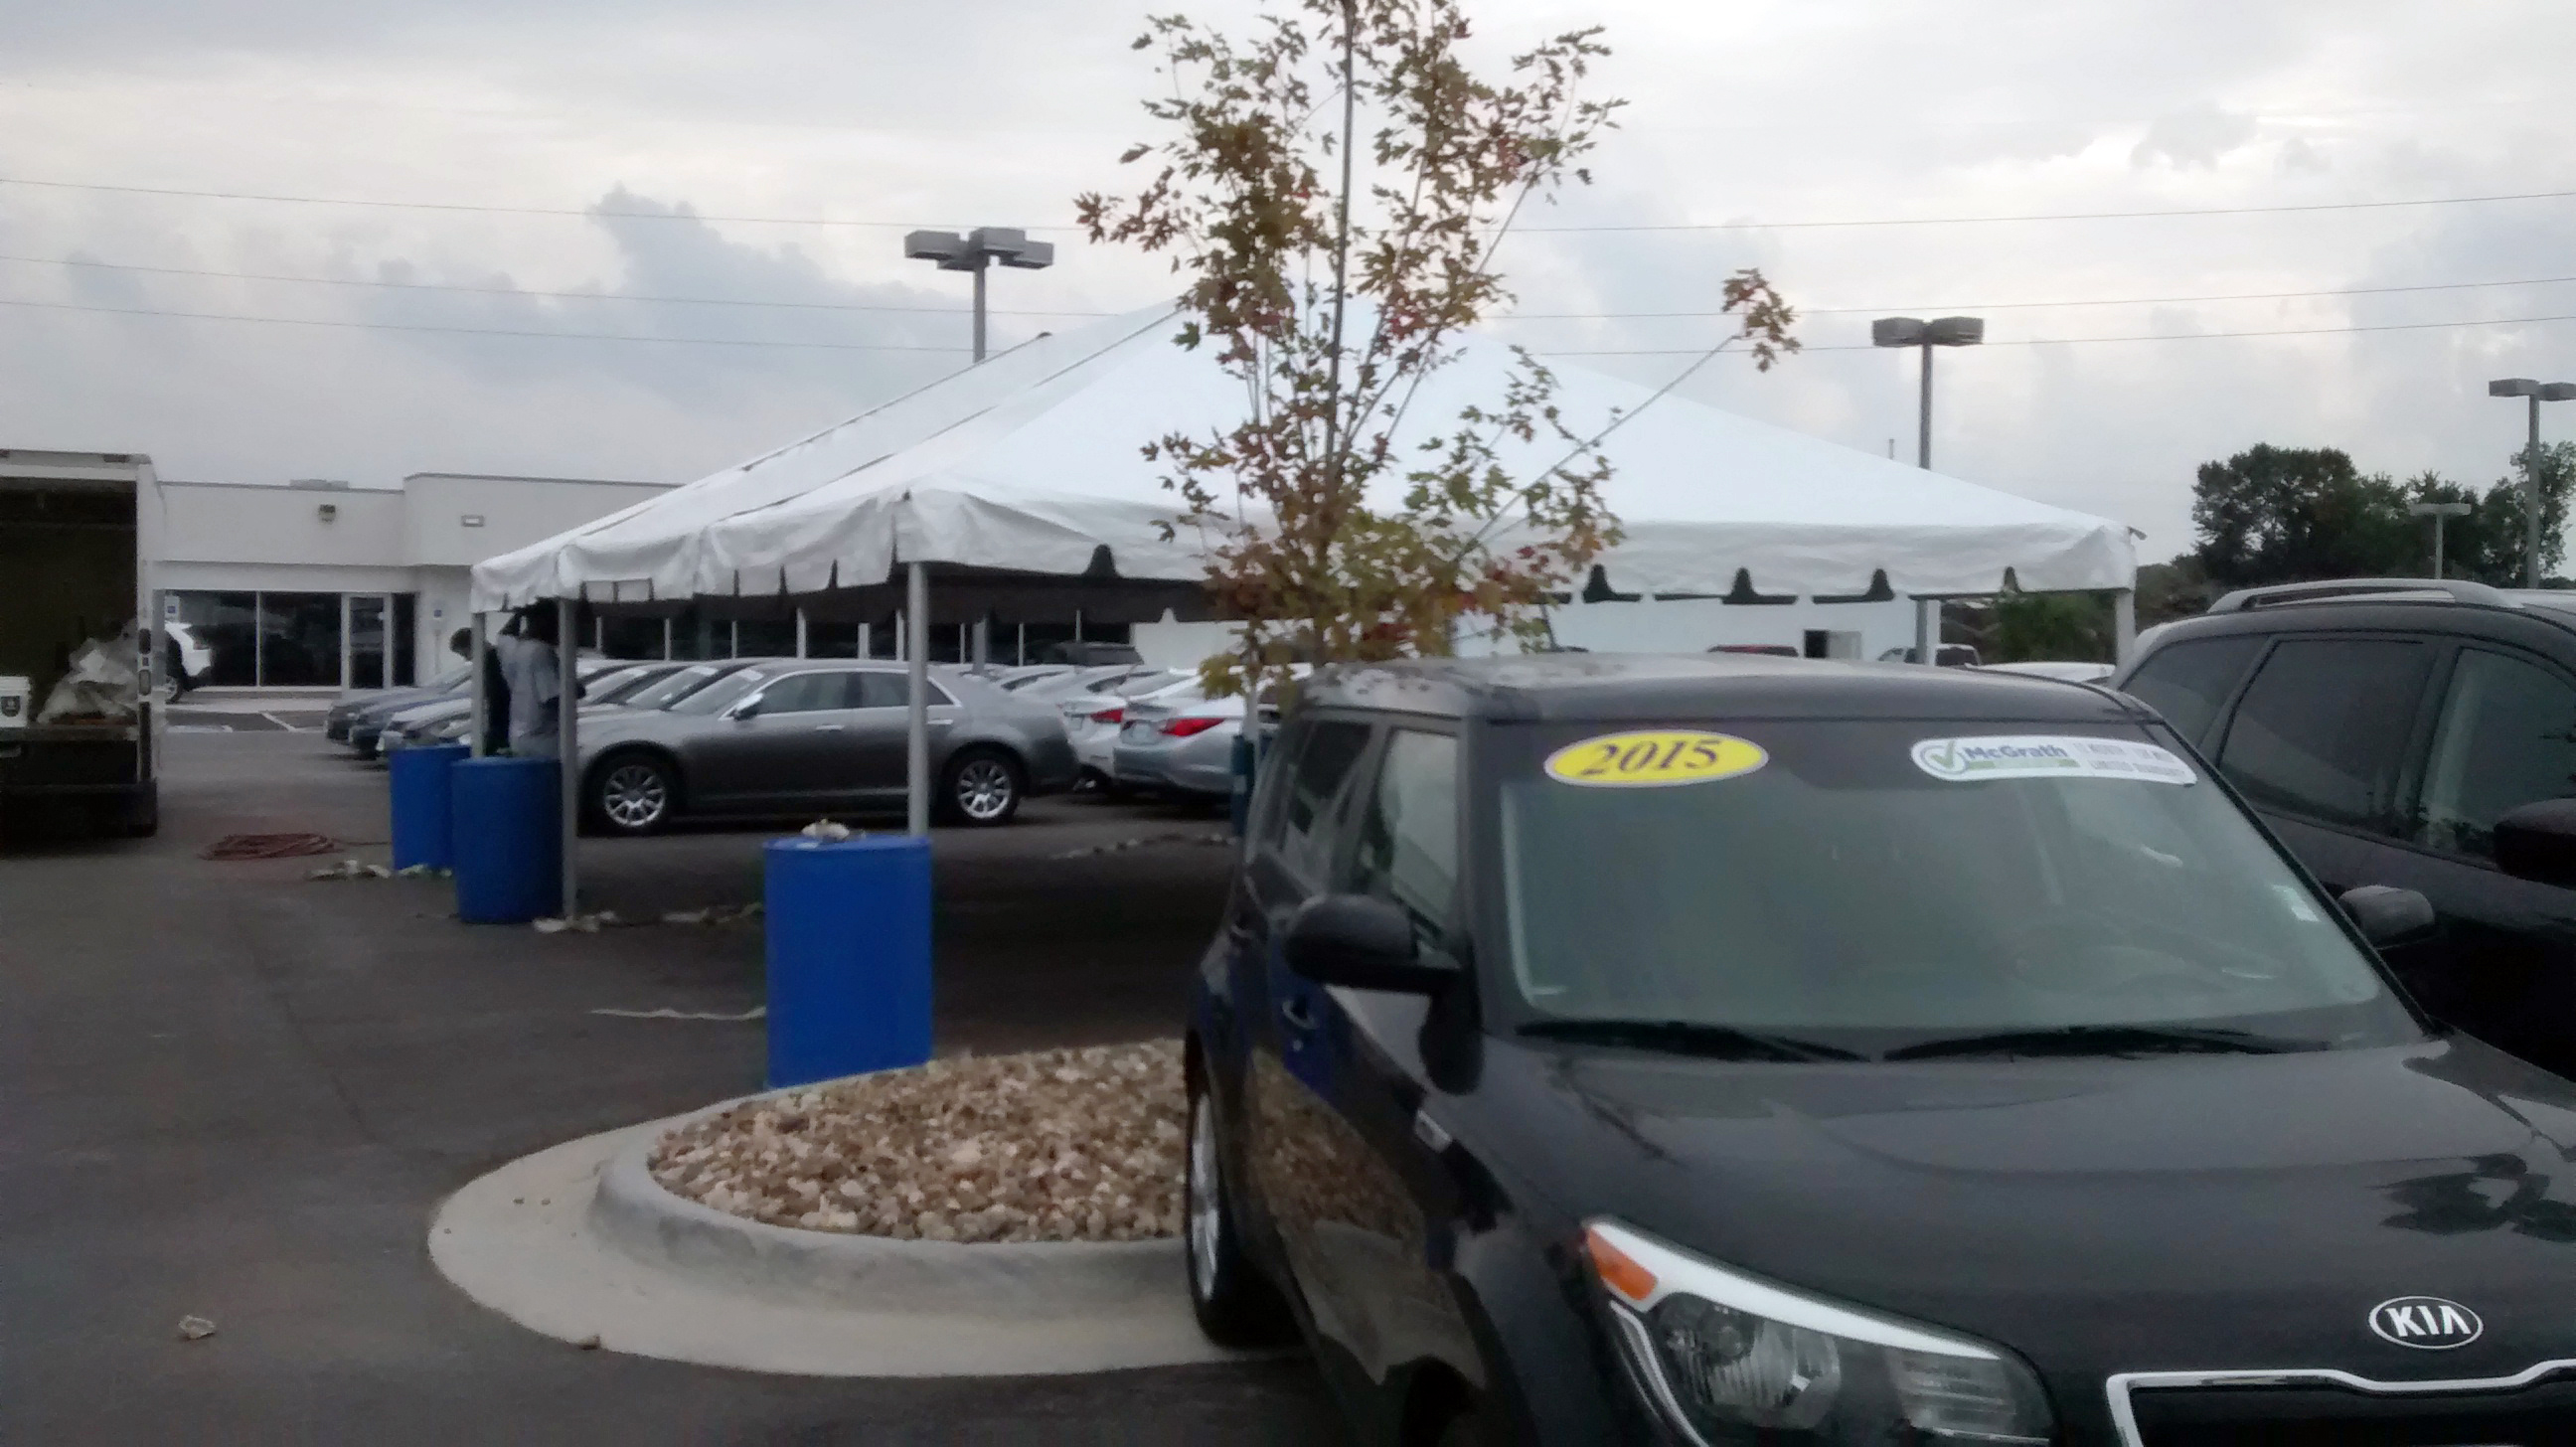 20′ x 30′ frame tent for the grand re-opening at Coralville Used Car Superstore with water barrels